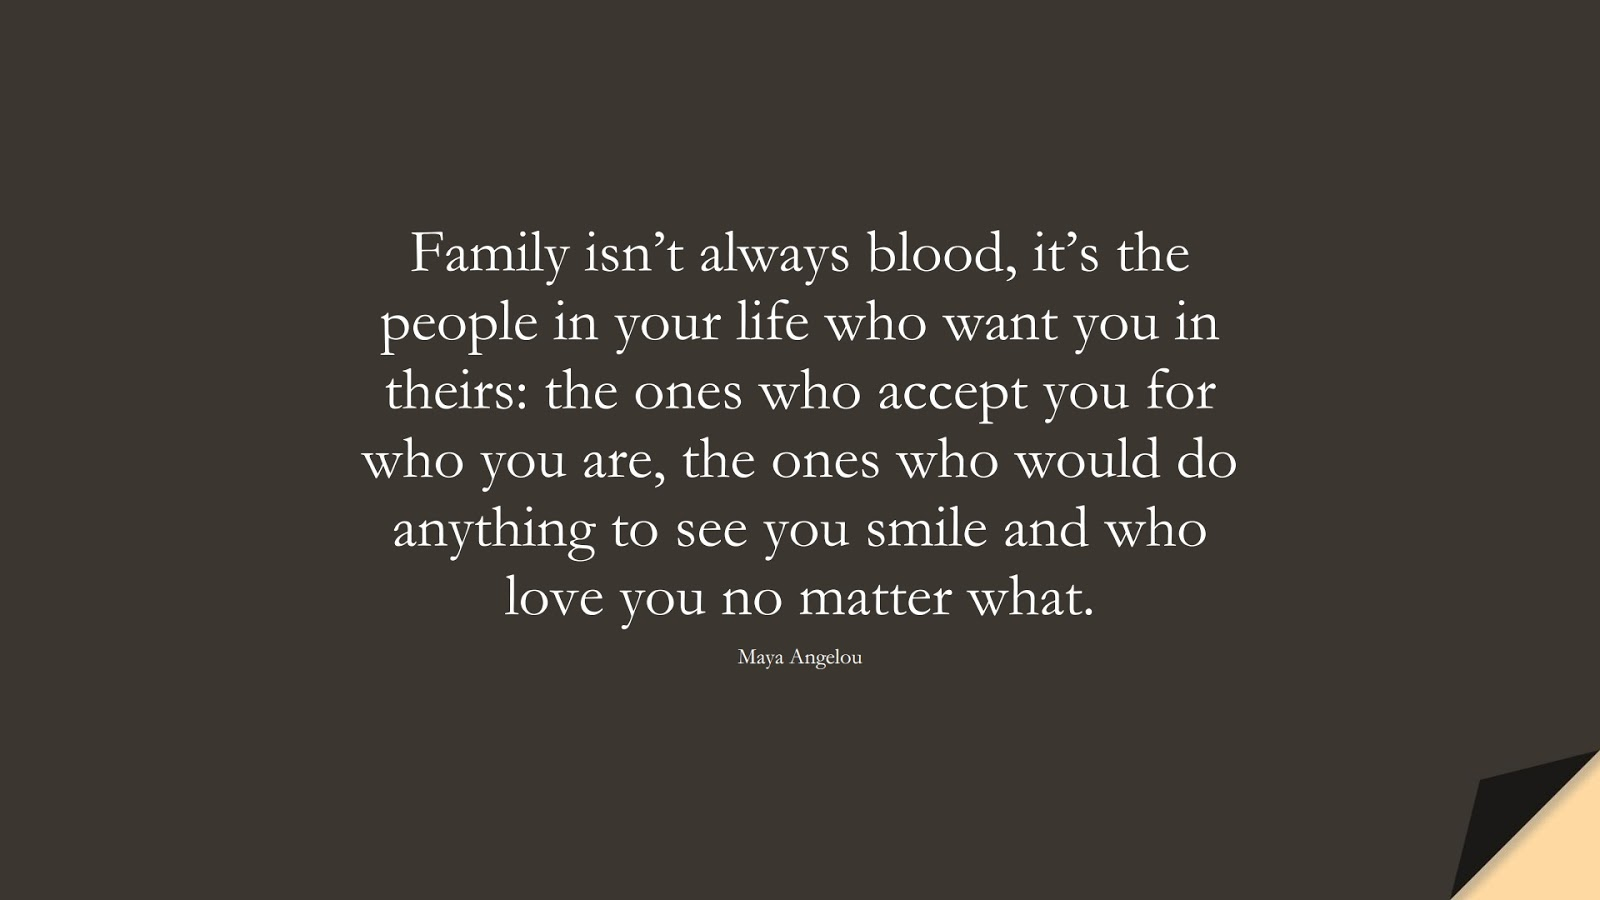 Family isn't always blood, it's the people in your life who want you in theirs: the ones who accept you for who you are, the ones who would do anything to see you smile and who love you no matter what. (Maya Angelou);  #RelationshipQuotes